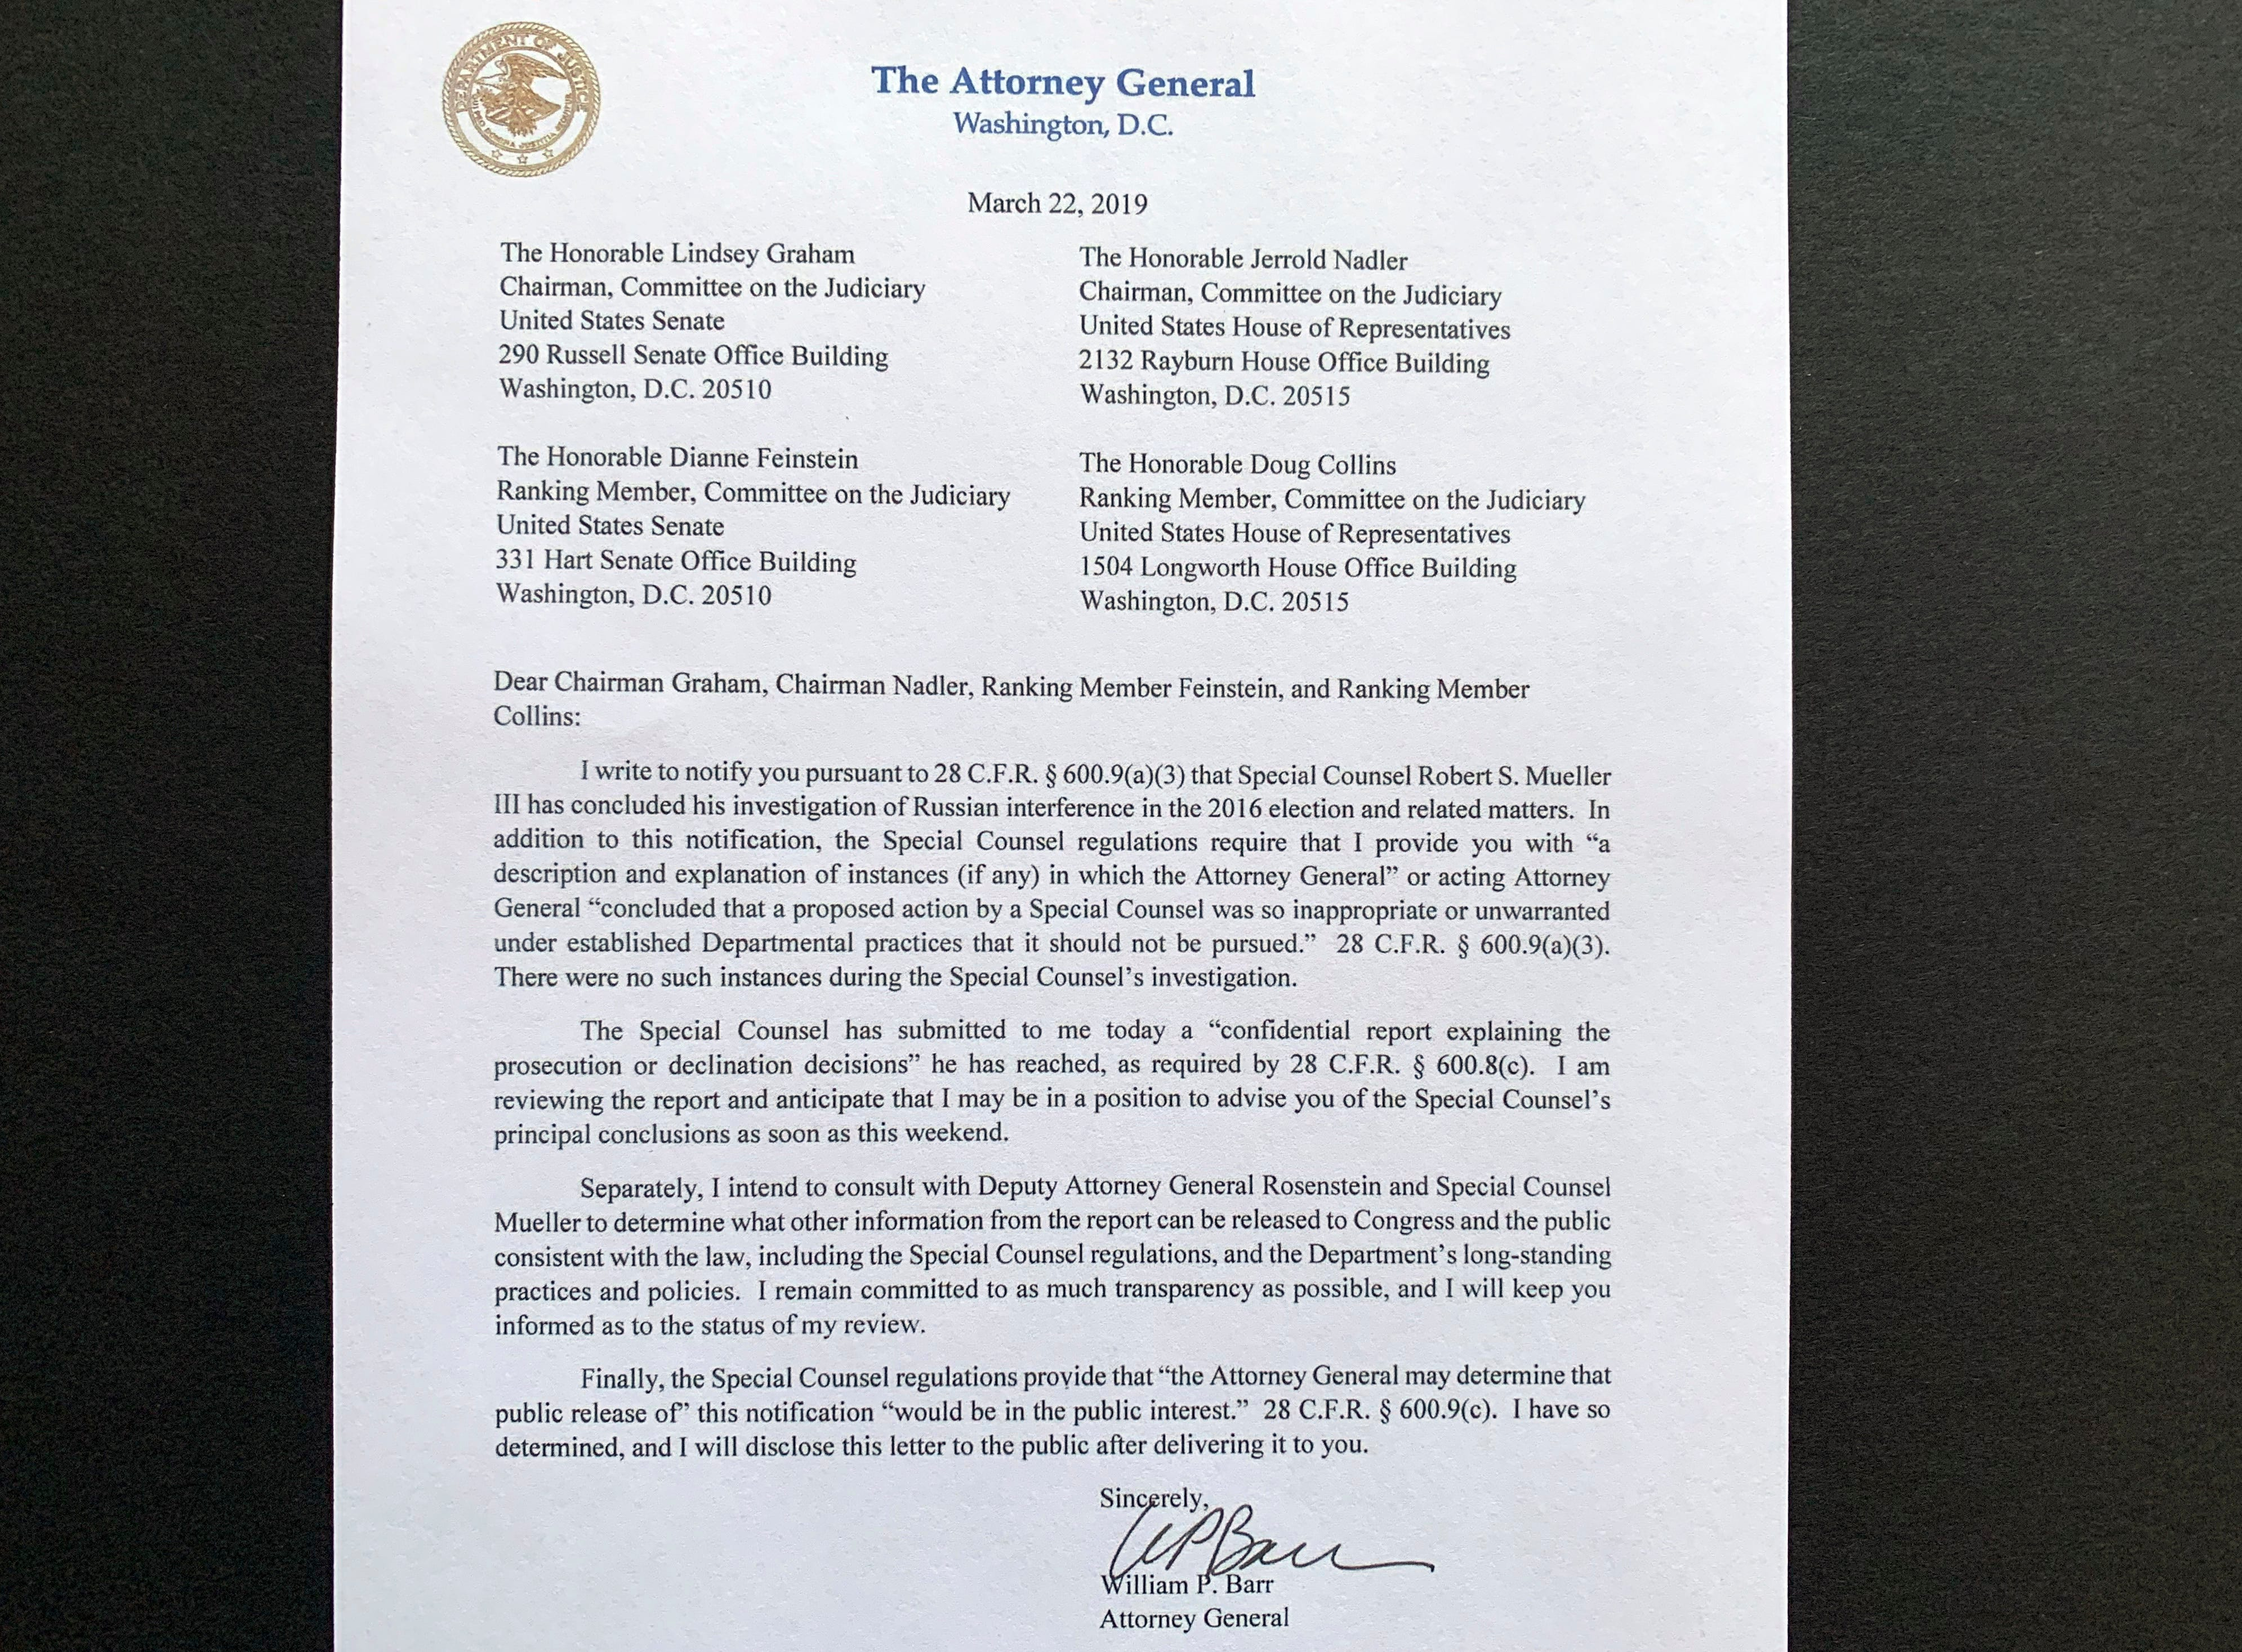 A copy of a letter from Attorney General William Barr advising Congress that Special Counsel Robert Mueller has concluded his investigation, is shown Friday, March 22, 2019 in Washington. Robert Mueller turned over his long-awaited final report on the contentious Russia investigation that has cast a dark shadow over Donald Trump's presidency, entangled Trump's family and resulted in criminal charges against some of the president's closest associates.